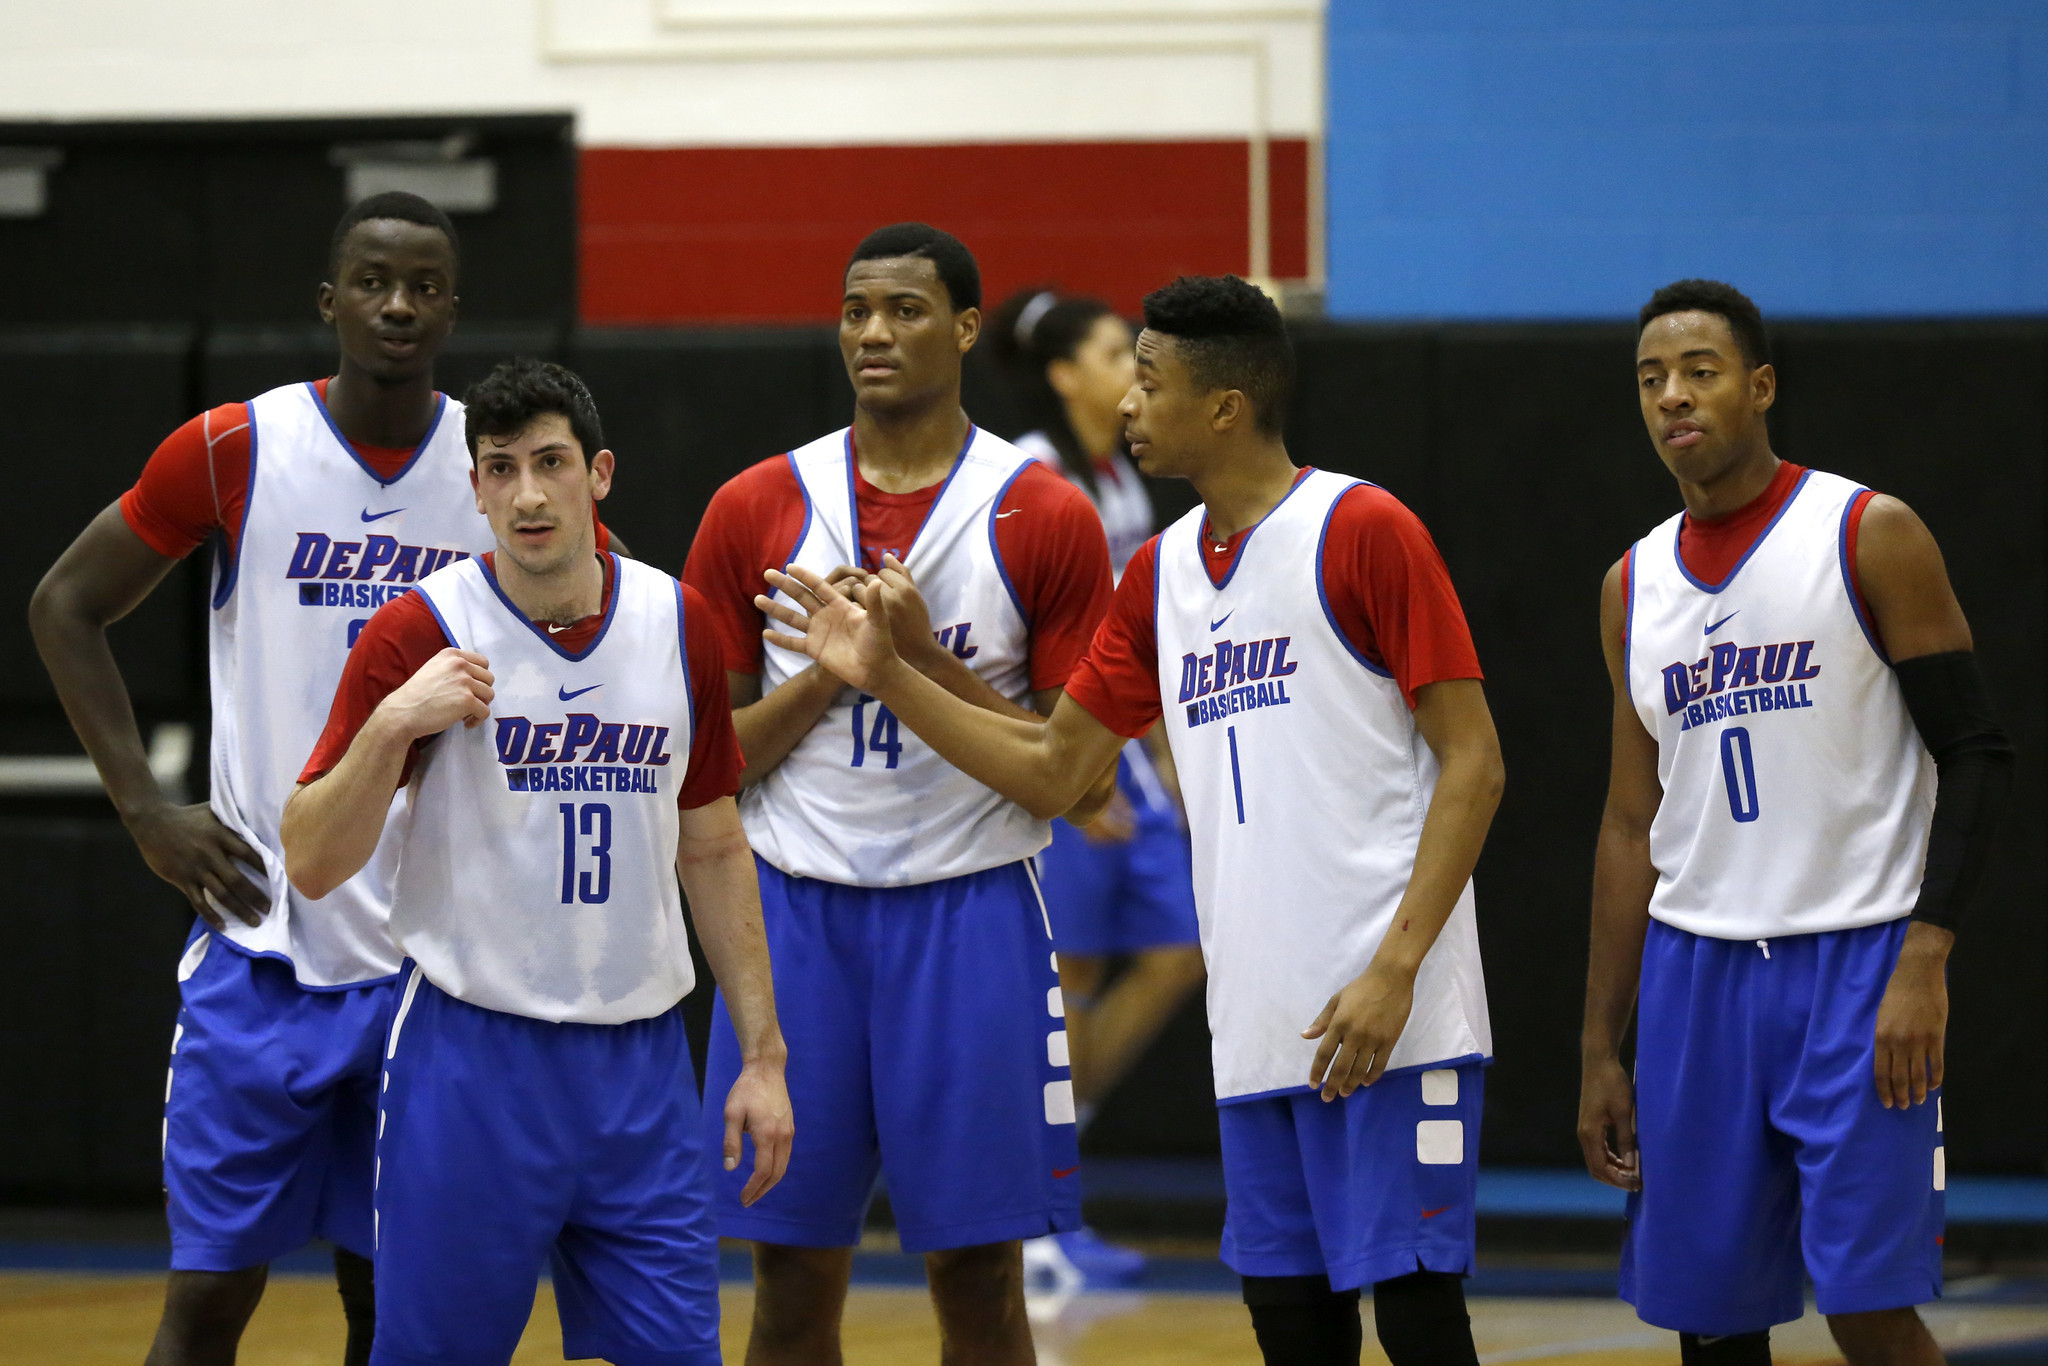 depaul blue demons basketball at a glance - chicago tribune